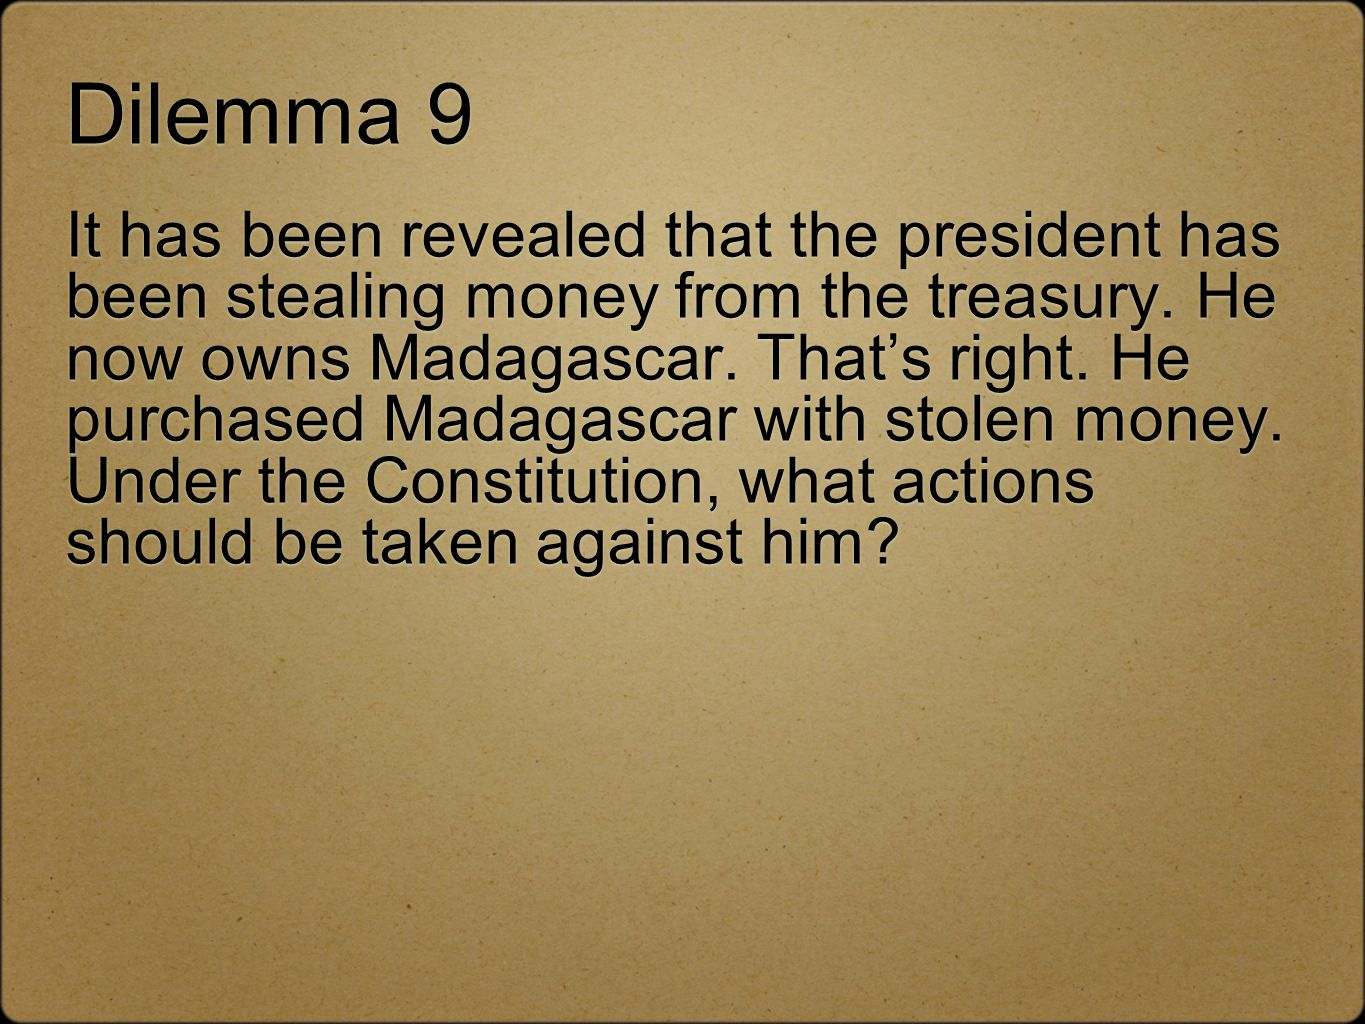 Dilemma 9 It has been revealed that the president has been stealing money from the treasury.